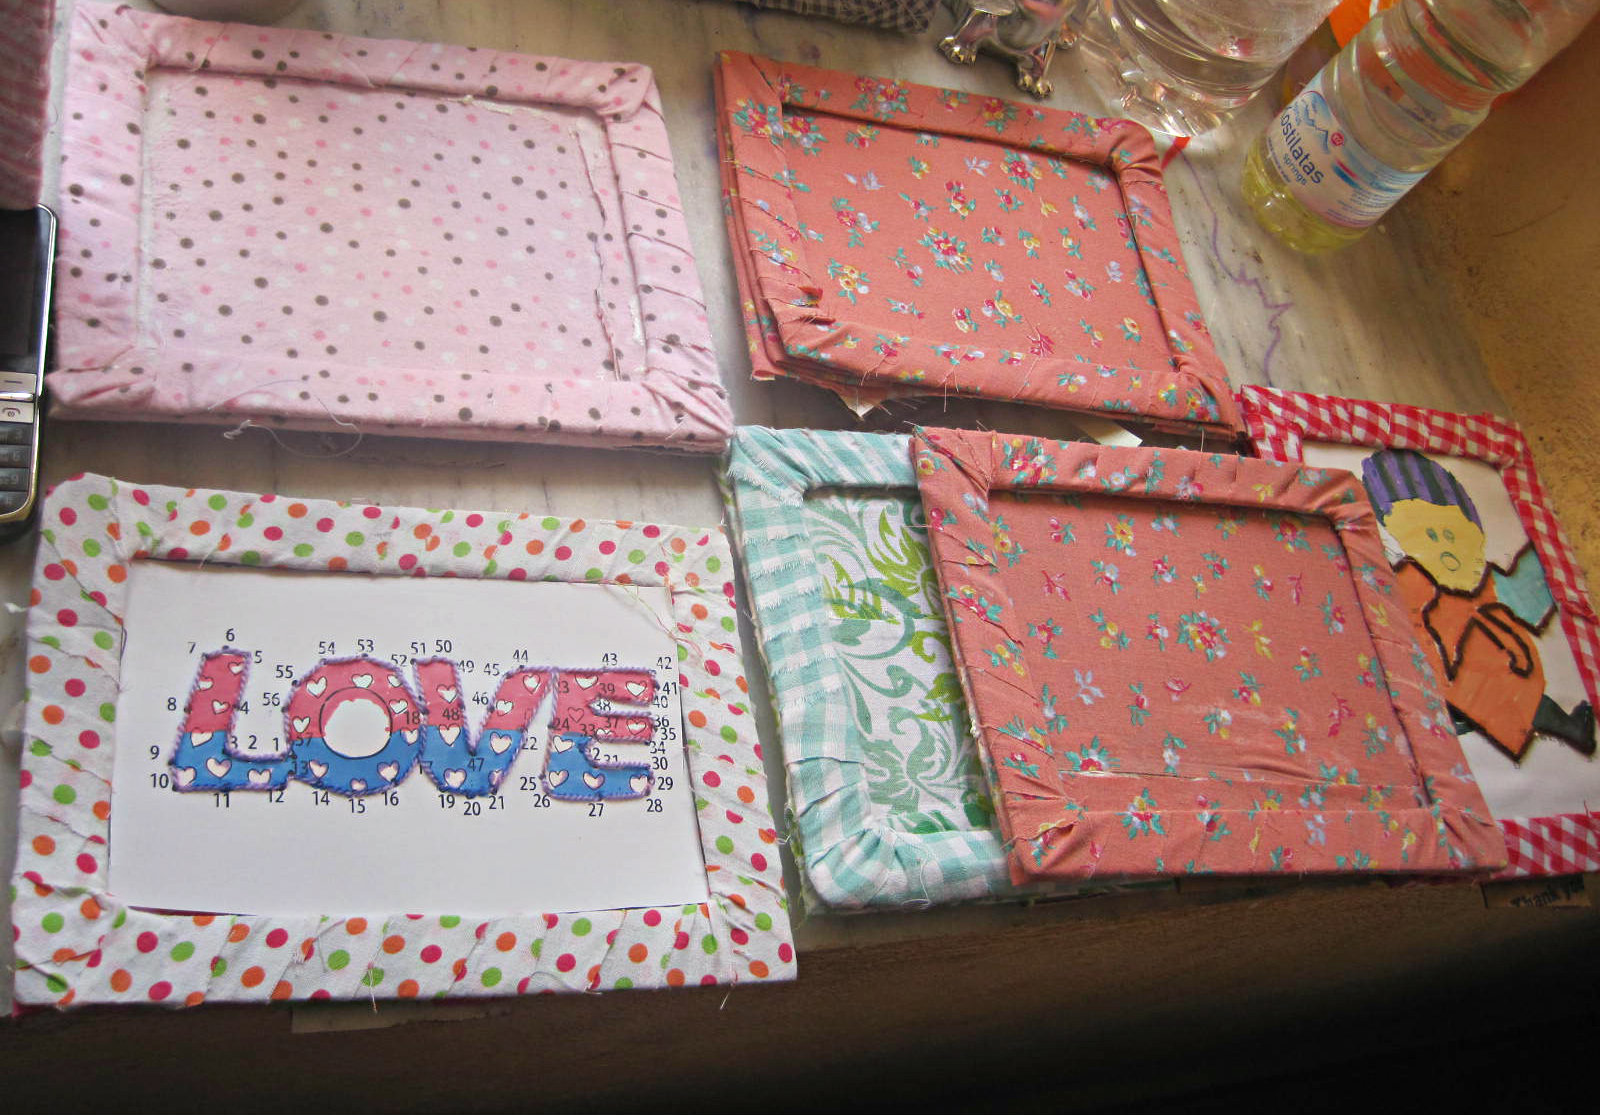 Bracelet & Picture Frame Making for Saranda Festival | The Art of Loving